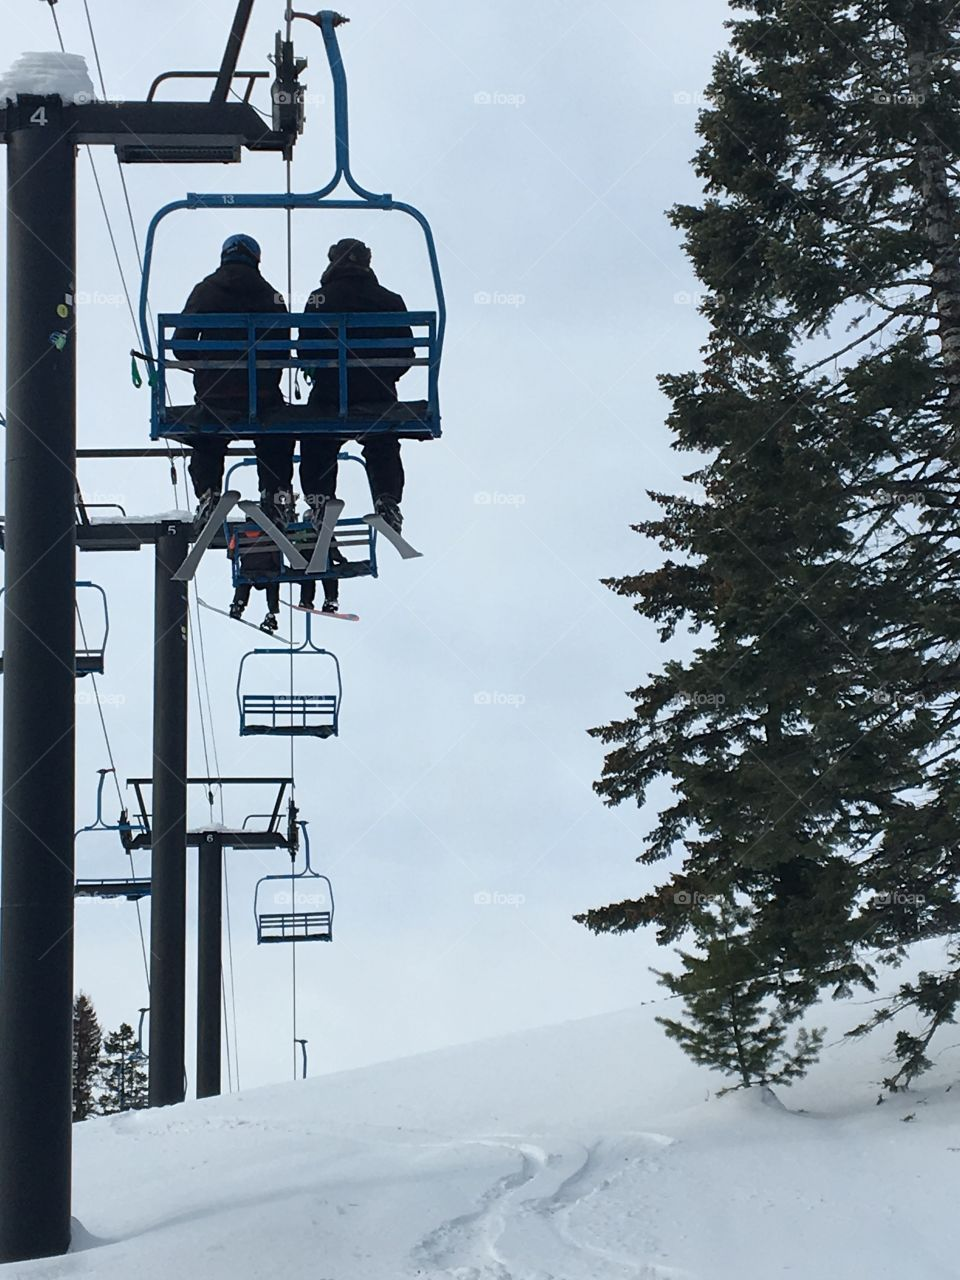 Two skiers on a ski lift